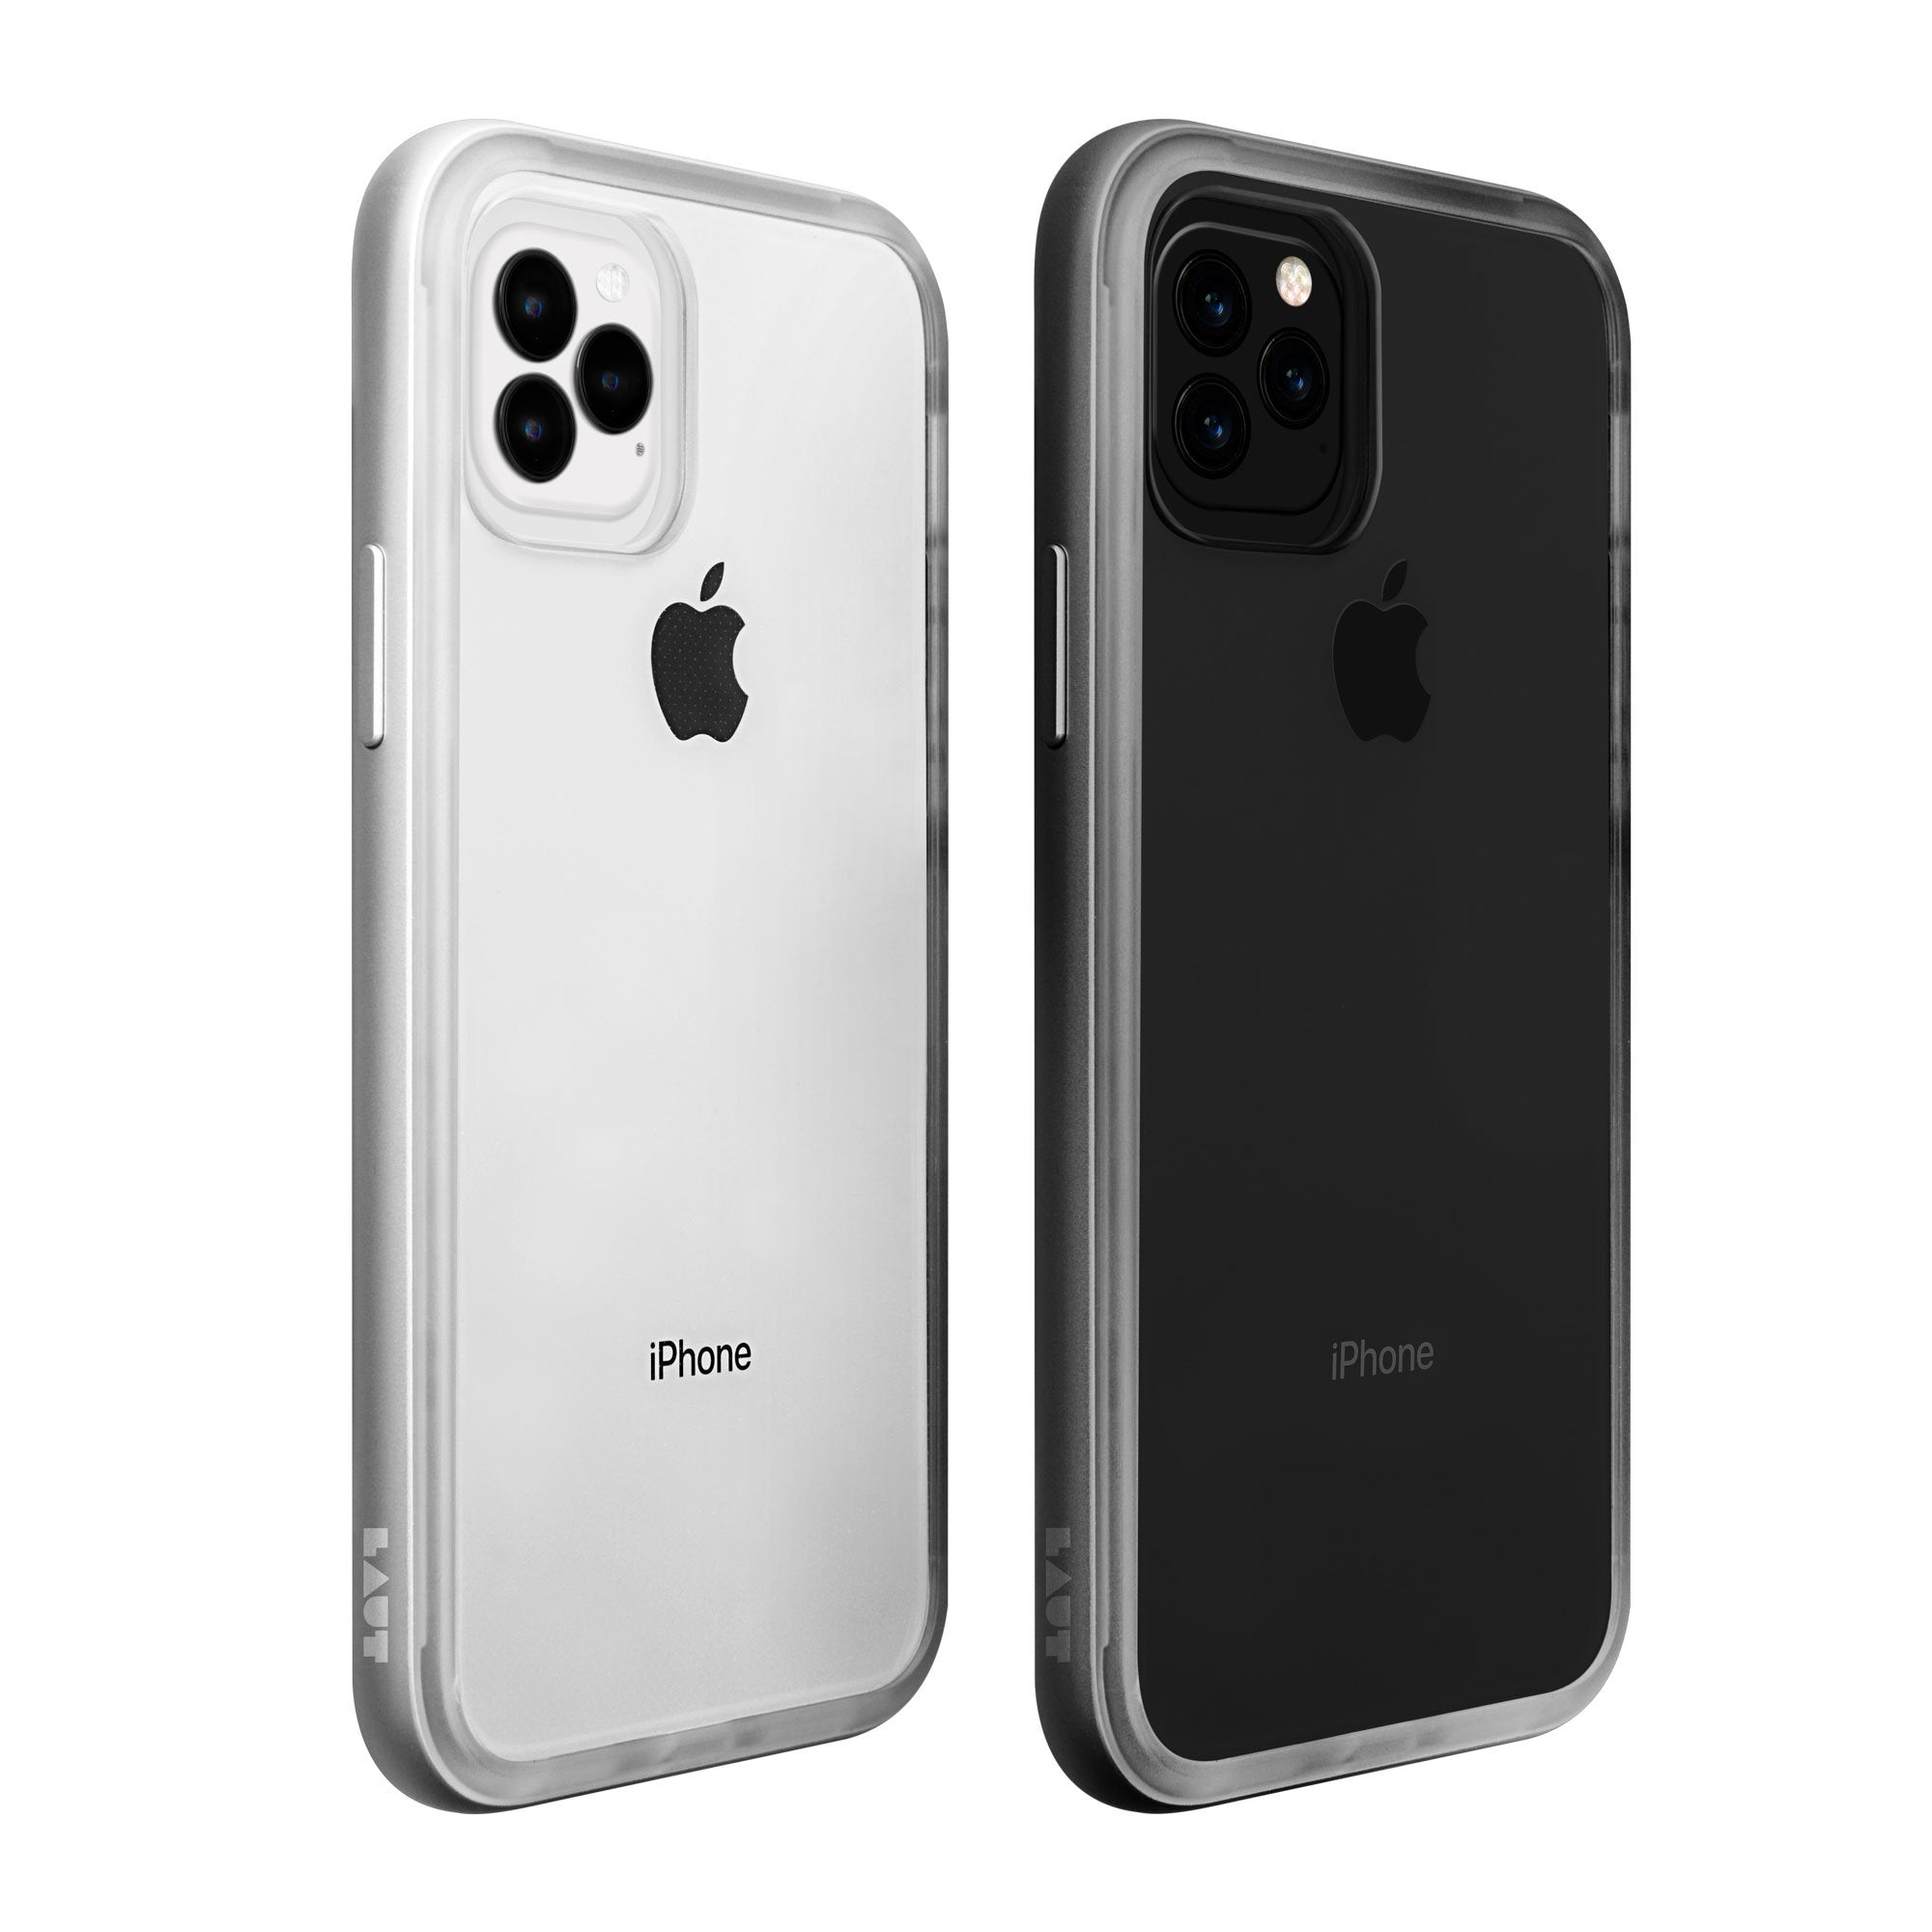 LAUT-EXOFRAME for iPhone 11 | iPhone 11 Pro | iPhone 11 Pro Max-Case-iPhone 11 / iPhone 11 Pro / iPhone 11 Pro Max